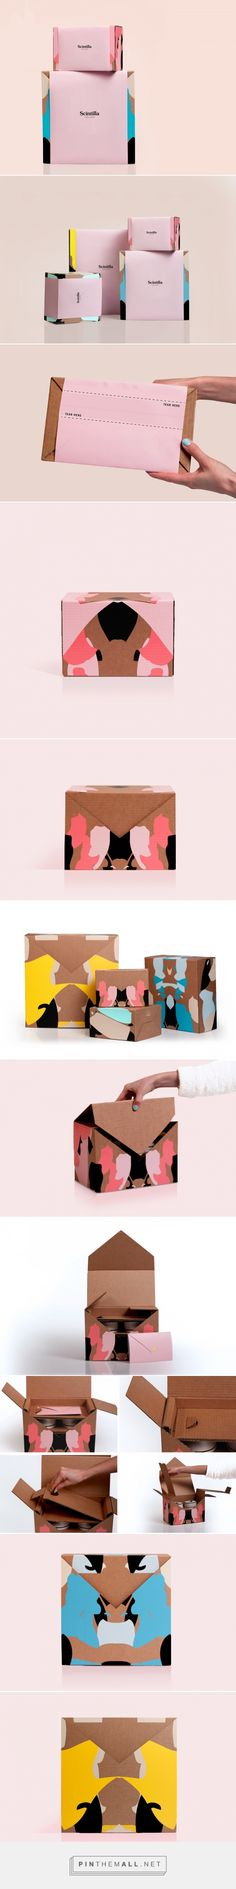 Scintilla Home Accessories Packaging by Milja Korpela | Fivestar Branding Agency – Design and Branding Agency & Curated Inspiration Gallery